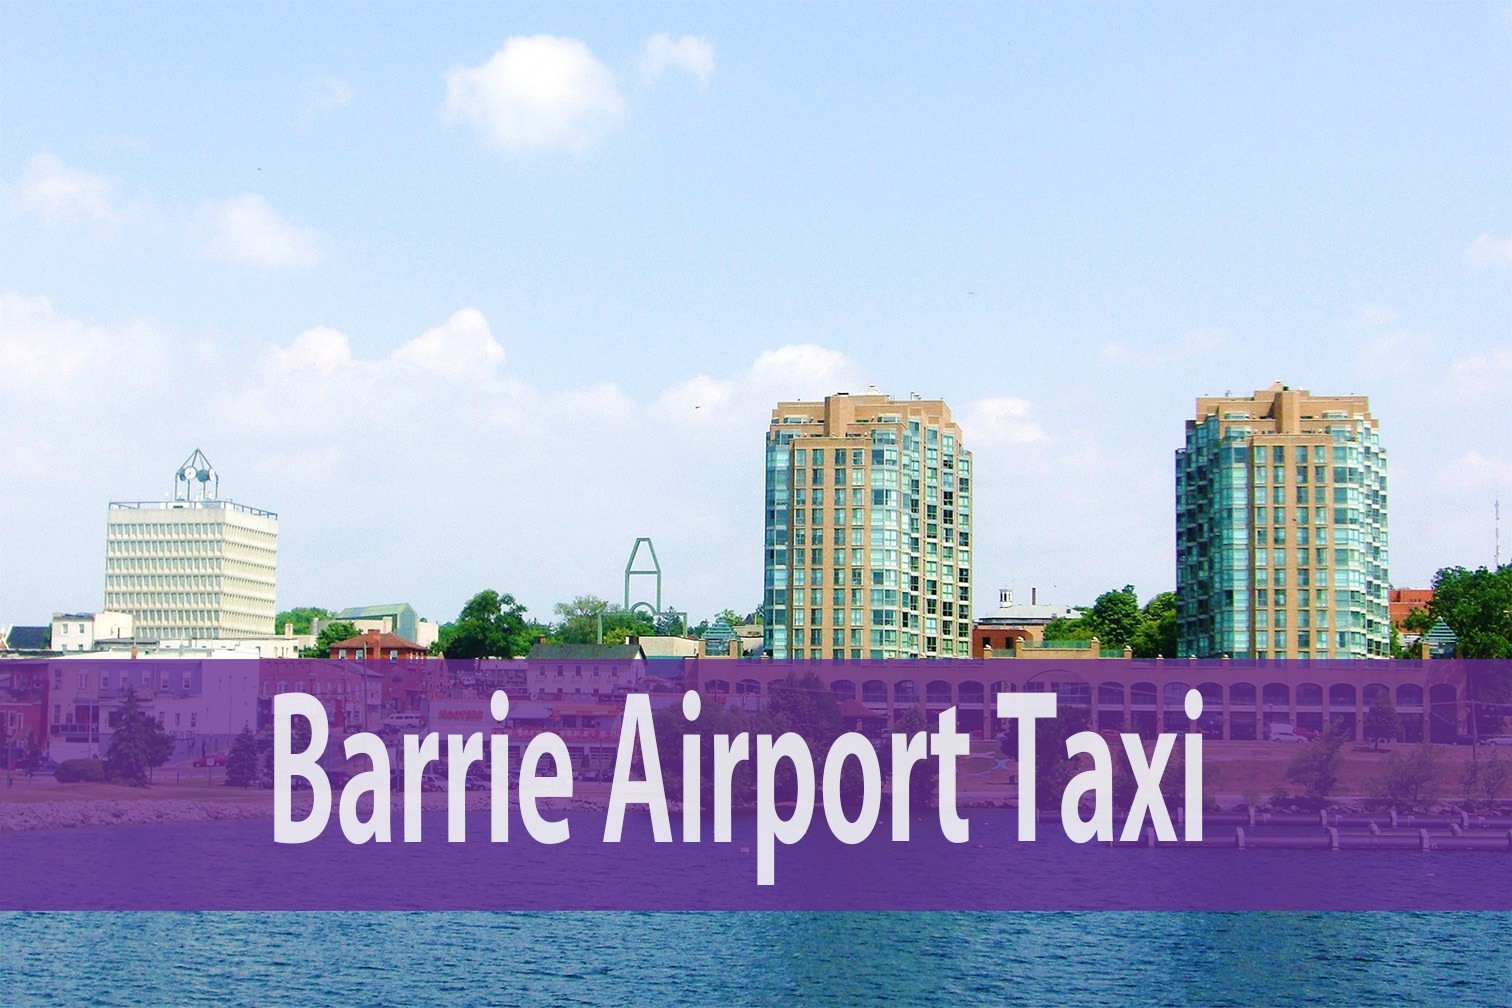 Barrie Airport Taxi